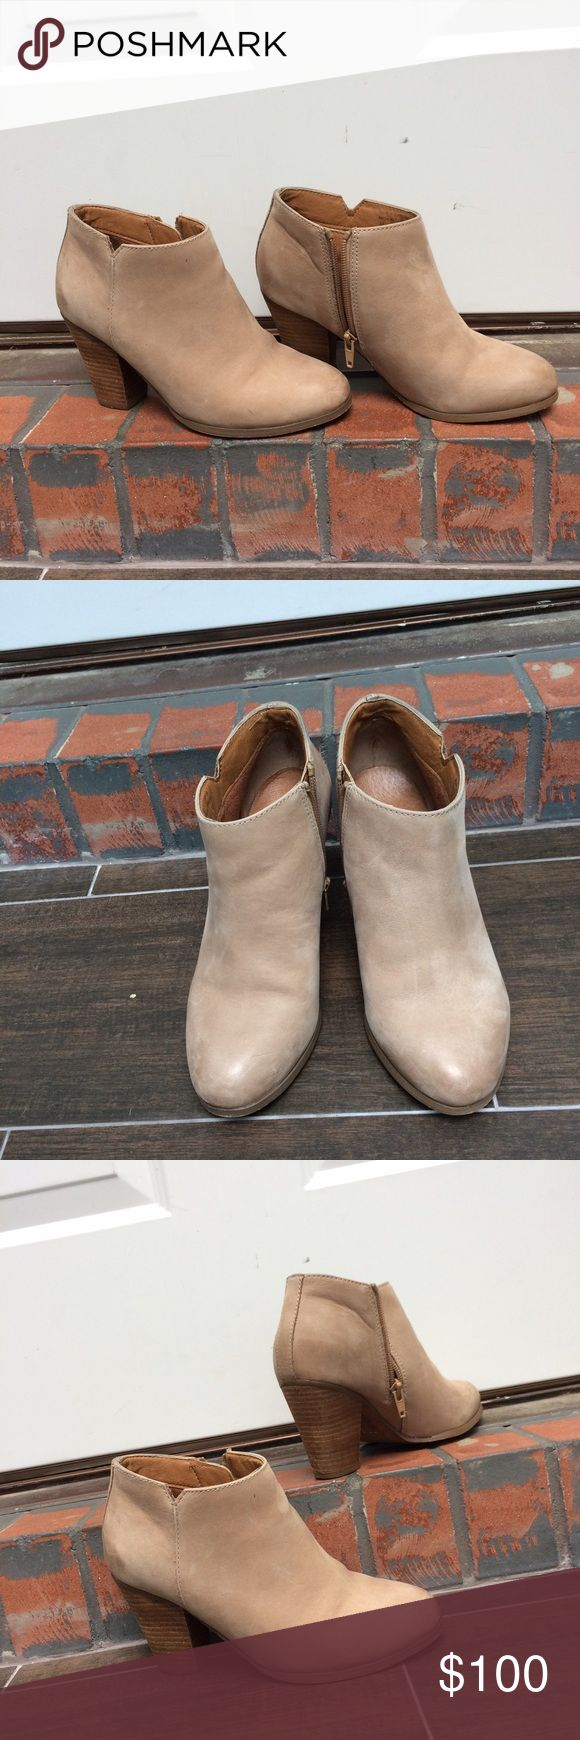 Aldo nude ankle boots On trend nude ankle boots by Aldo. About 3 in heel. Comfortable. Excellent used condition Aldo Shoes Ankle Boots & Booties